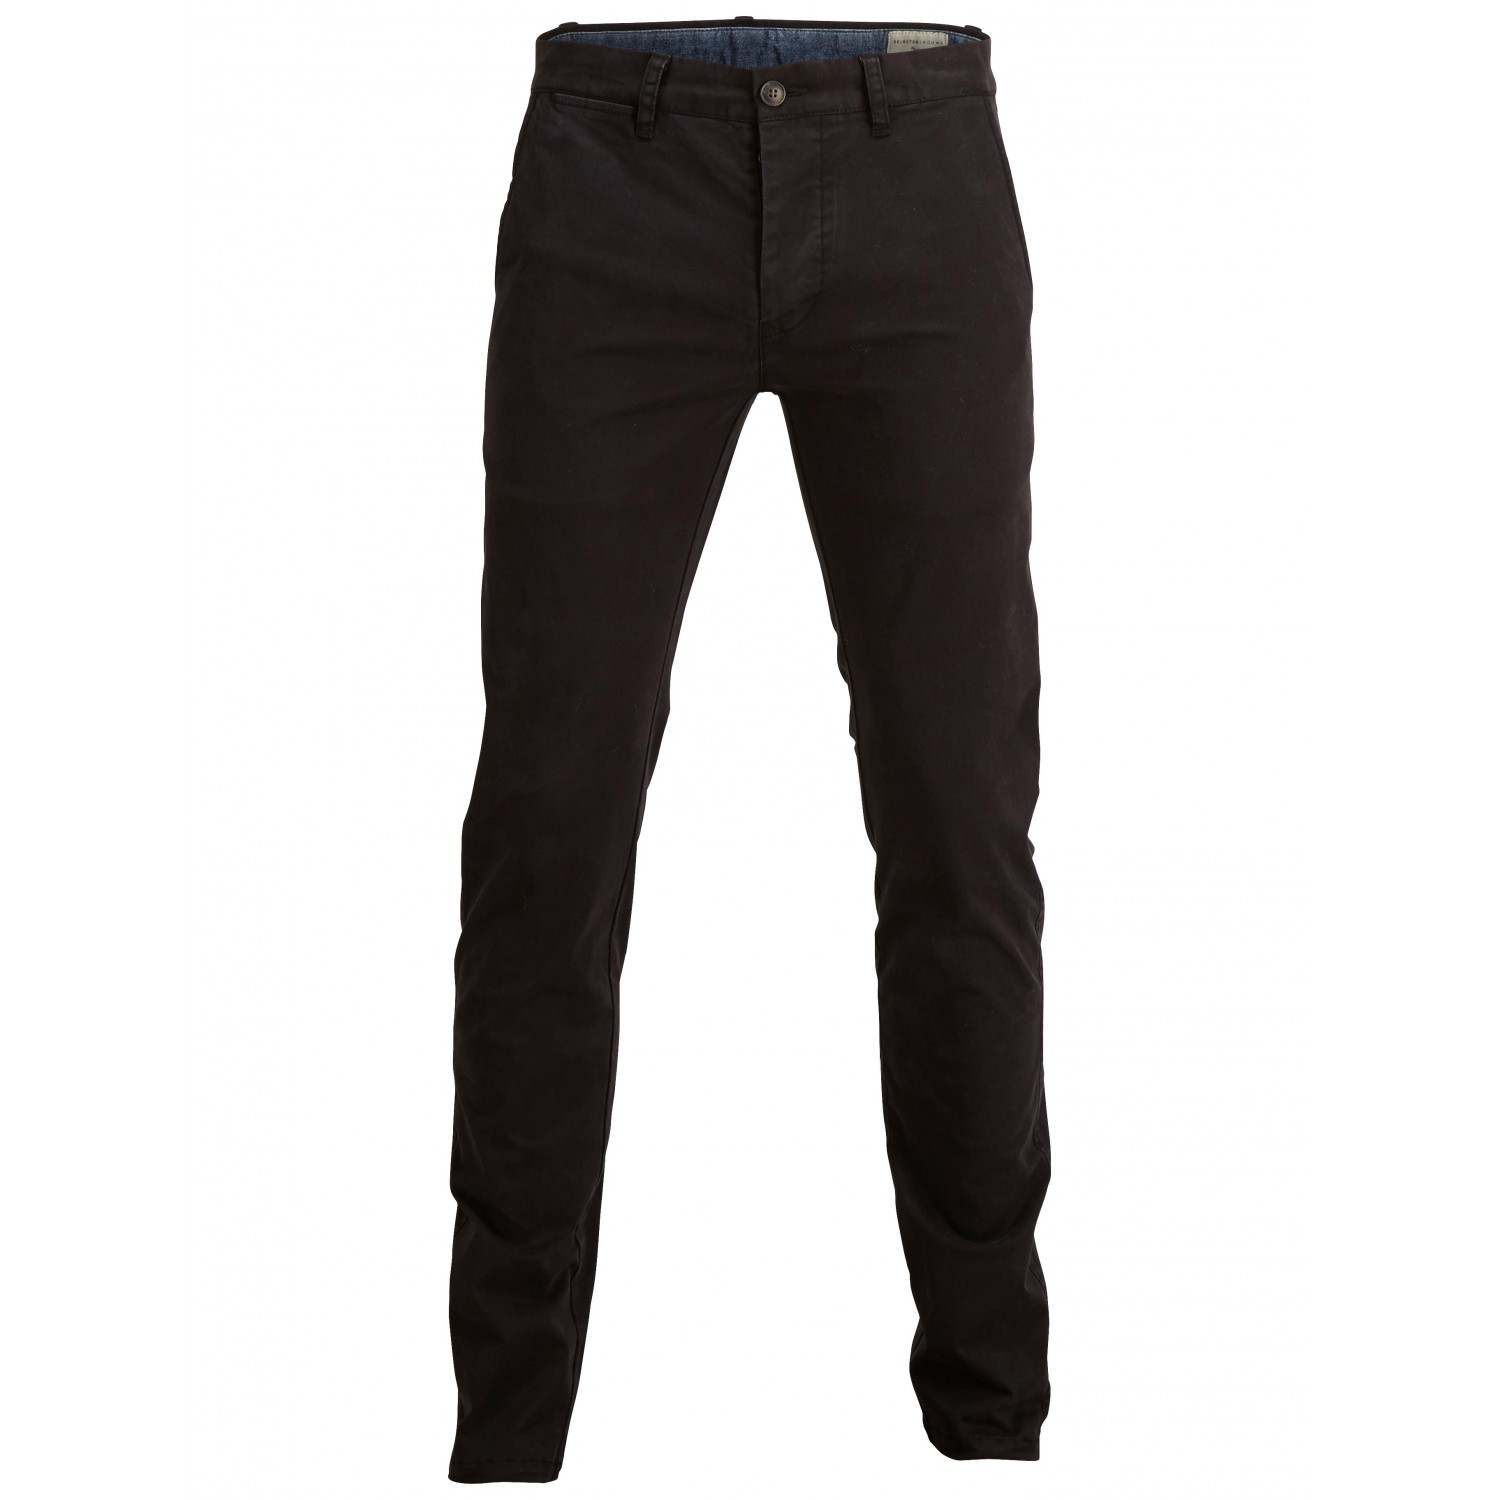 Selected homme  Pantalon chino noir coupe ajustée